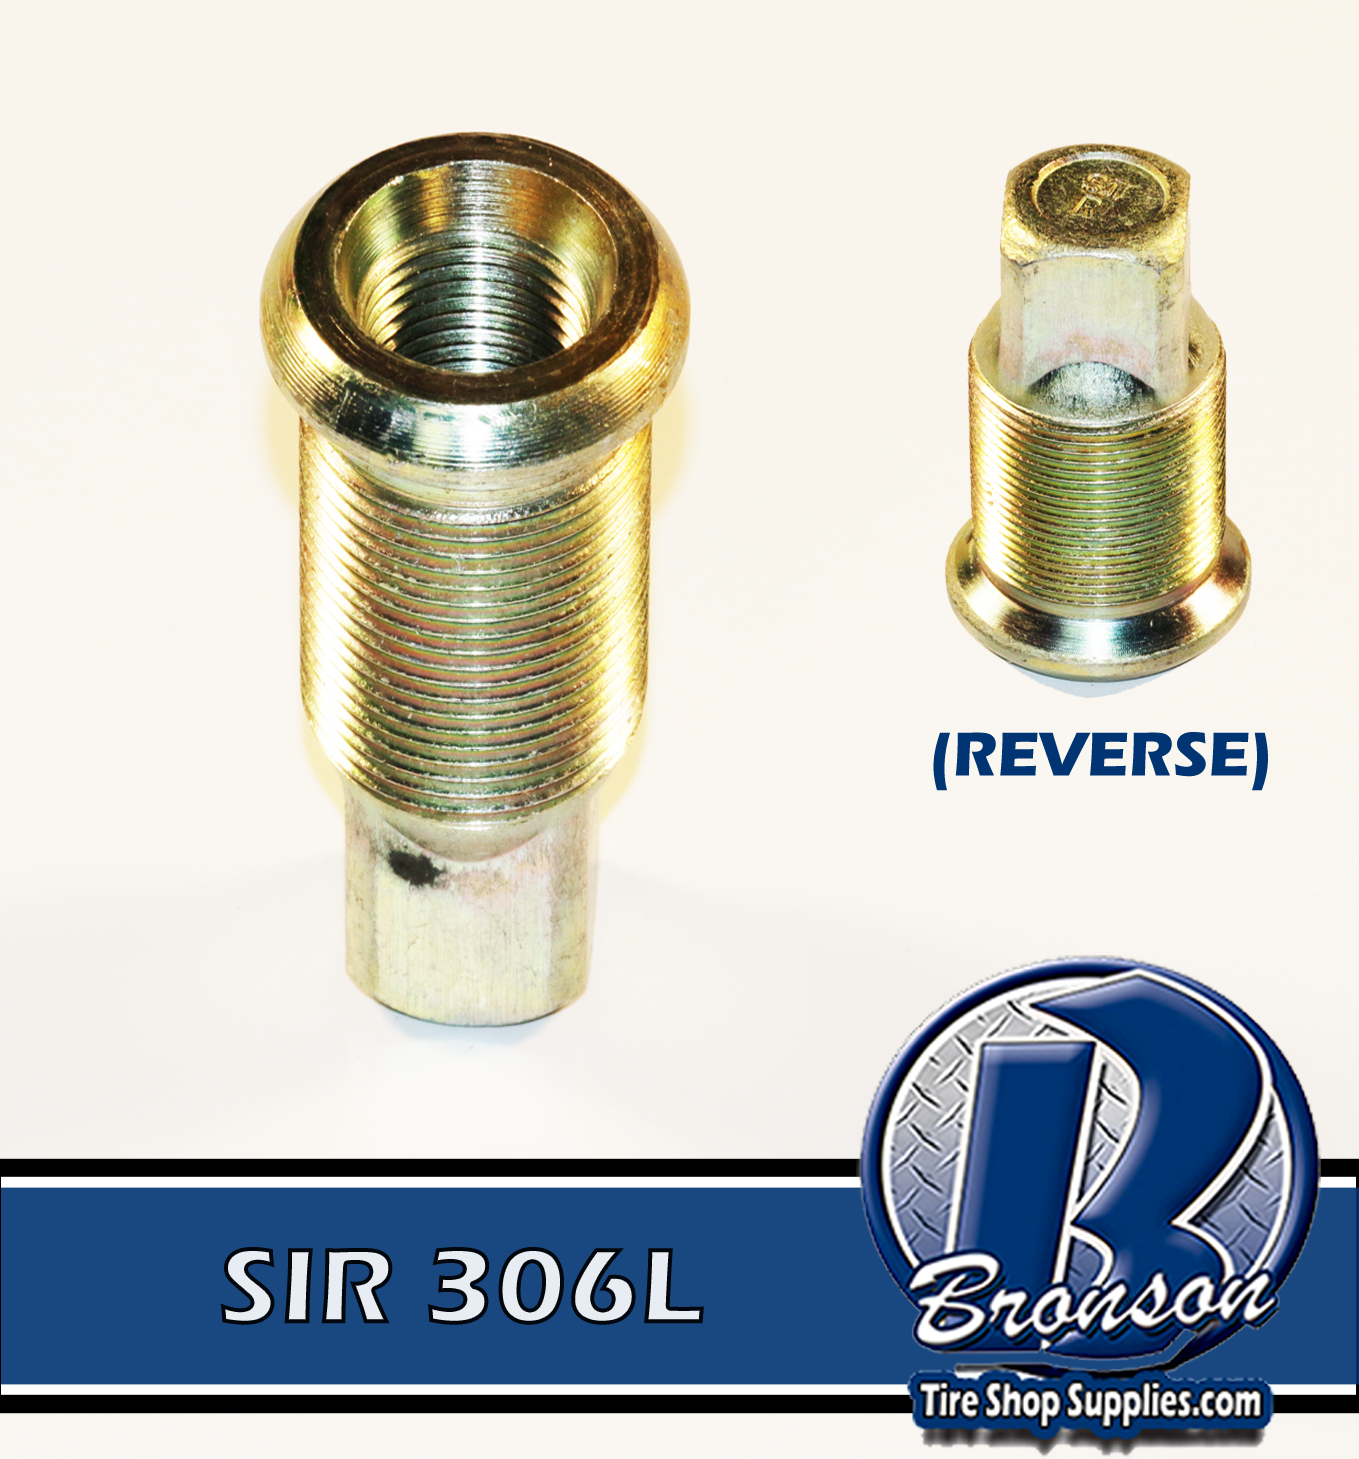 SIR 306L METRIC INNER NUT